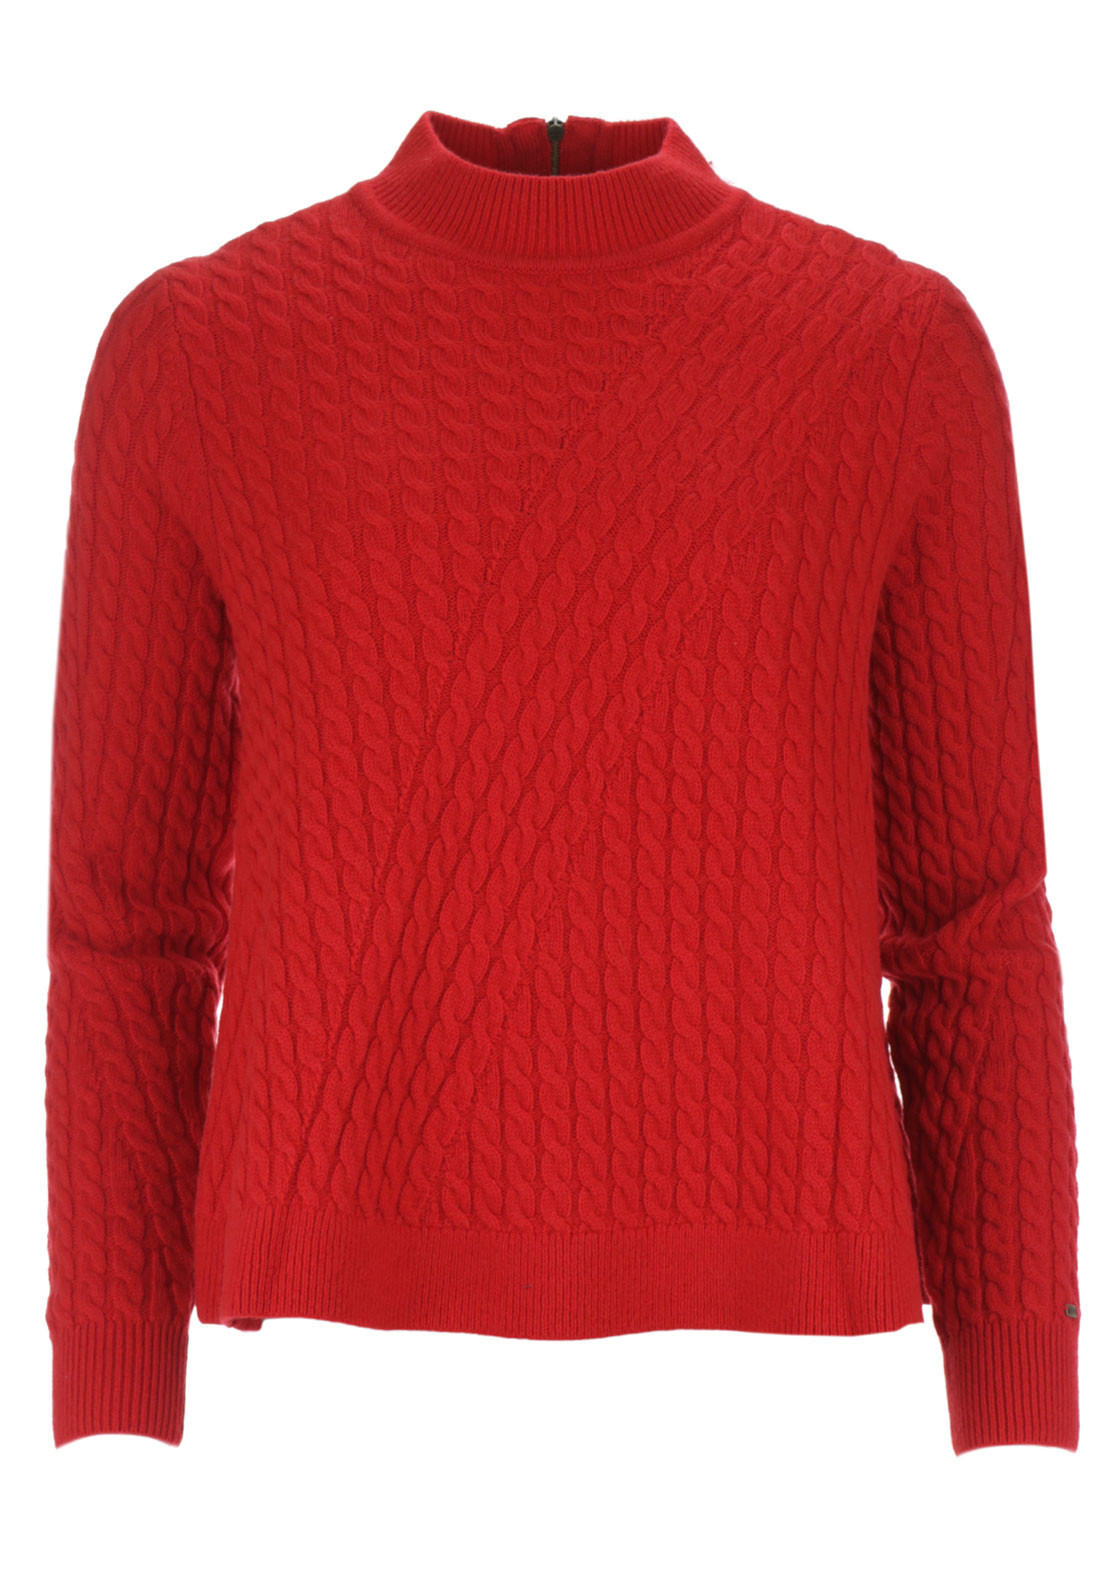 Tommy Hilfiger Womens Burdette Jumper, Red